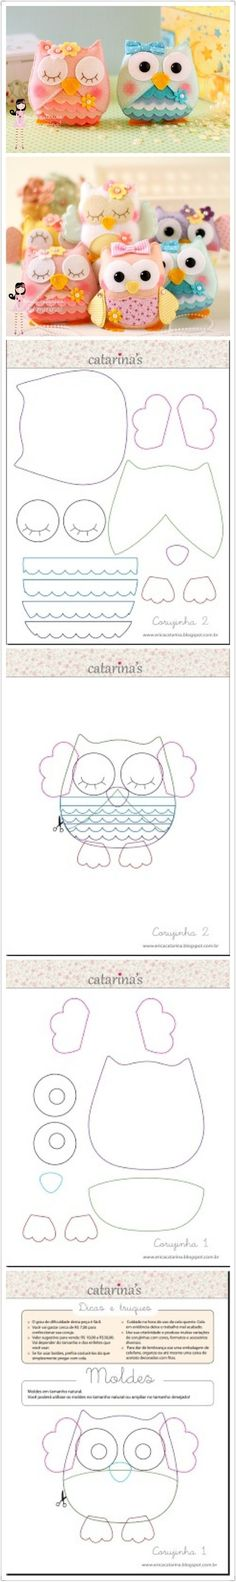 Felt owls, Owl patterns i inne popularne na Pinter. Sewing Toys, Sewing Crafts, Sewing Projects, Felt Projects, Owl Crafts, Cute Crafts, Owl Patterns, Sewing Patterns, Owl Templates